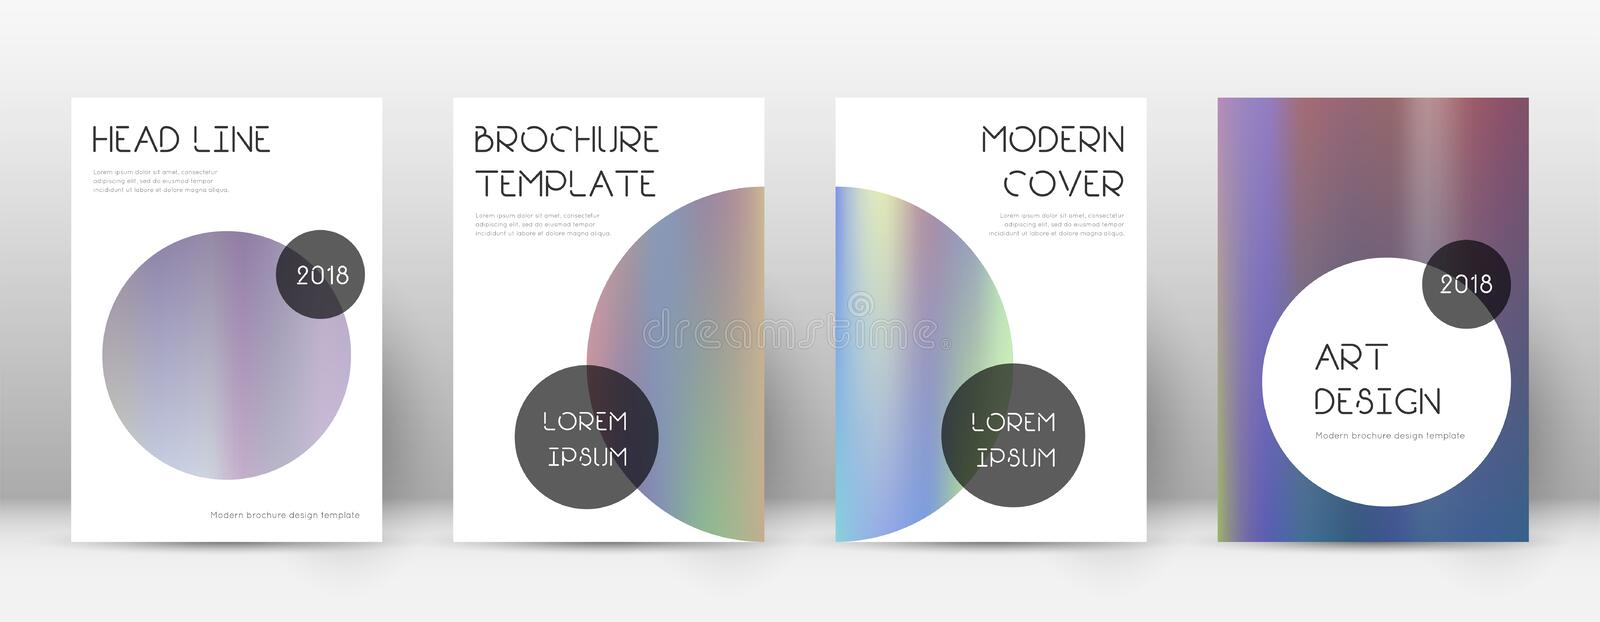 Flyer layout. Trendy emotional template for Brochure, Annual Report, Magazine, Poster, Corporate Presentation, Portfolio, Flyer. Beauteous bright hologram royalty free illustration